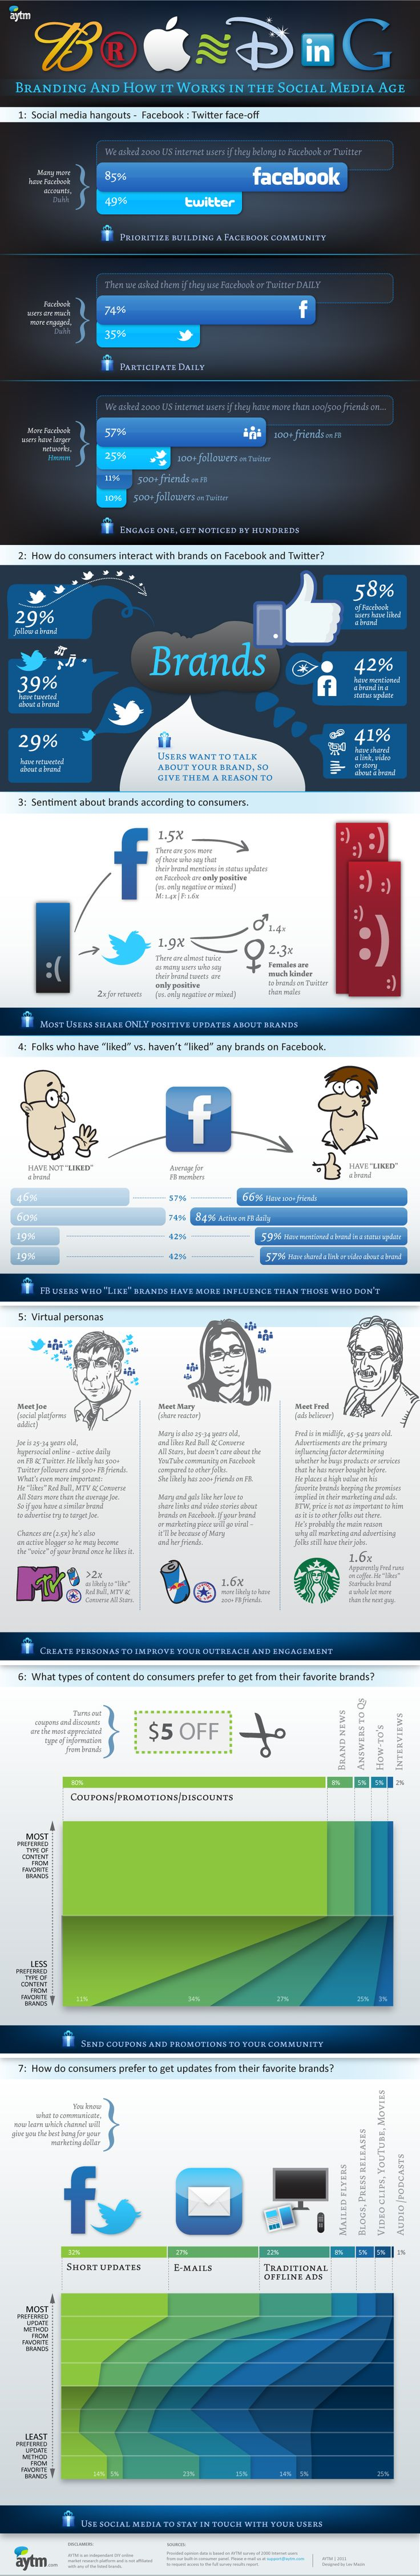 #Branding and How It works in the #socialmedia age [infographic]